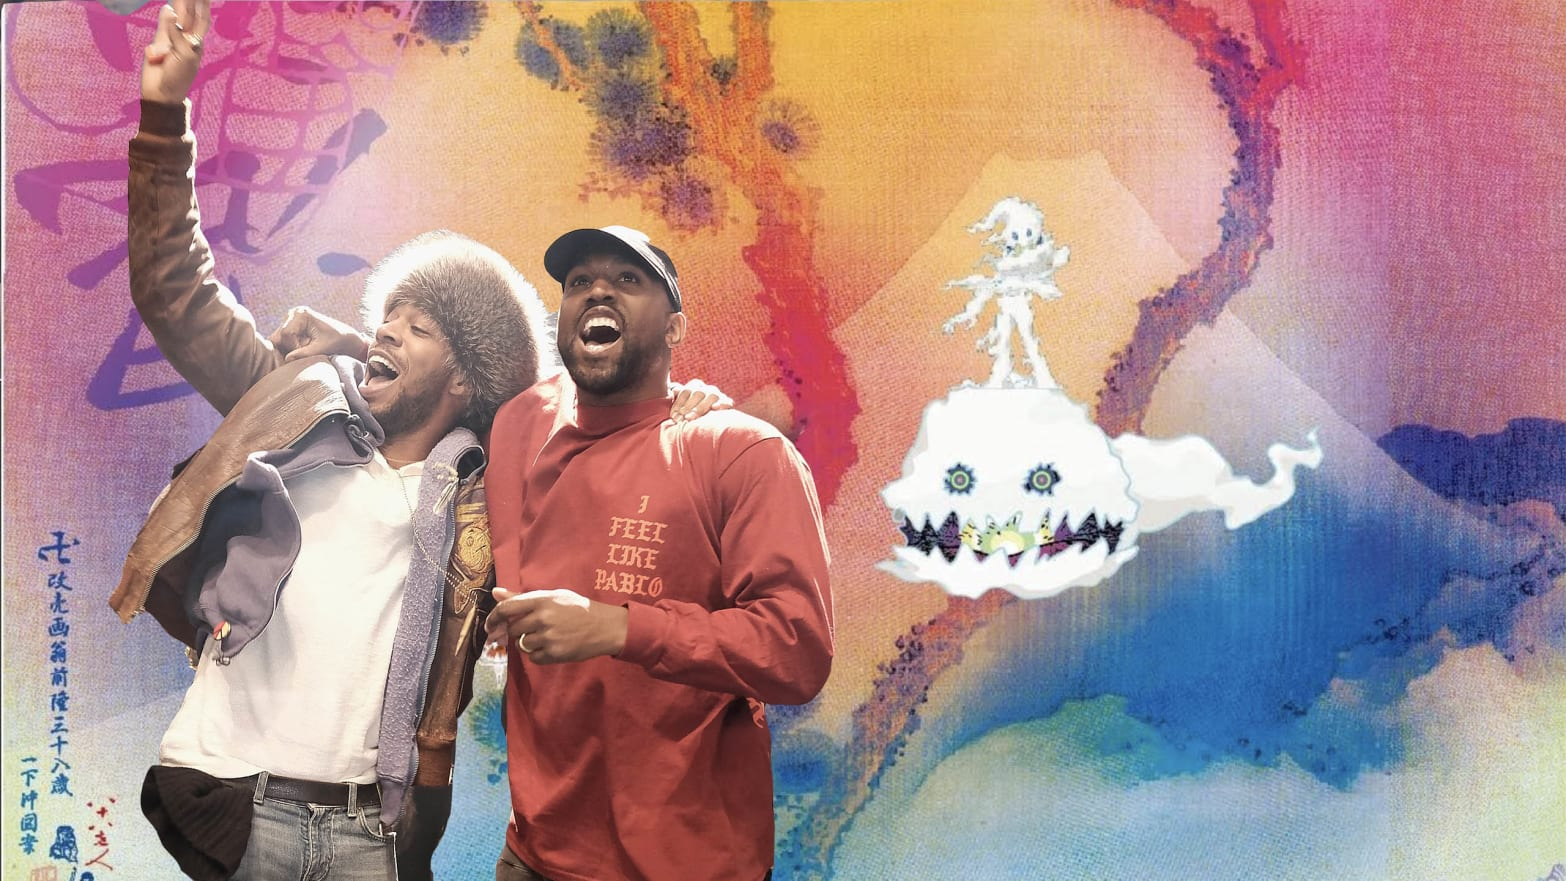 On Kids See Ghosts Kanye West And Kid Cudi Bare Their